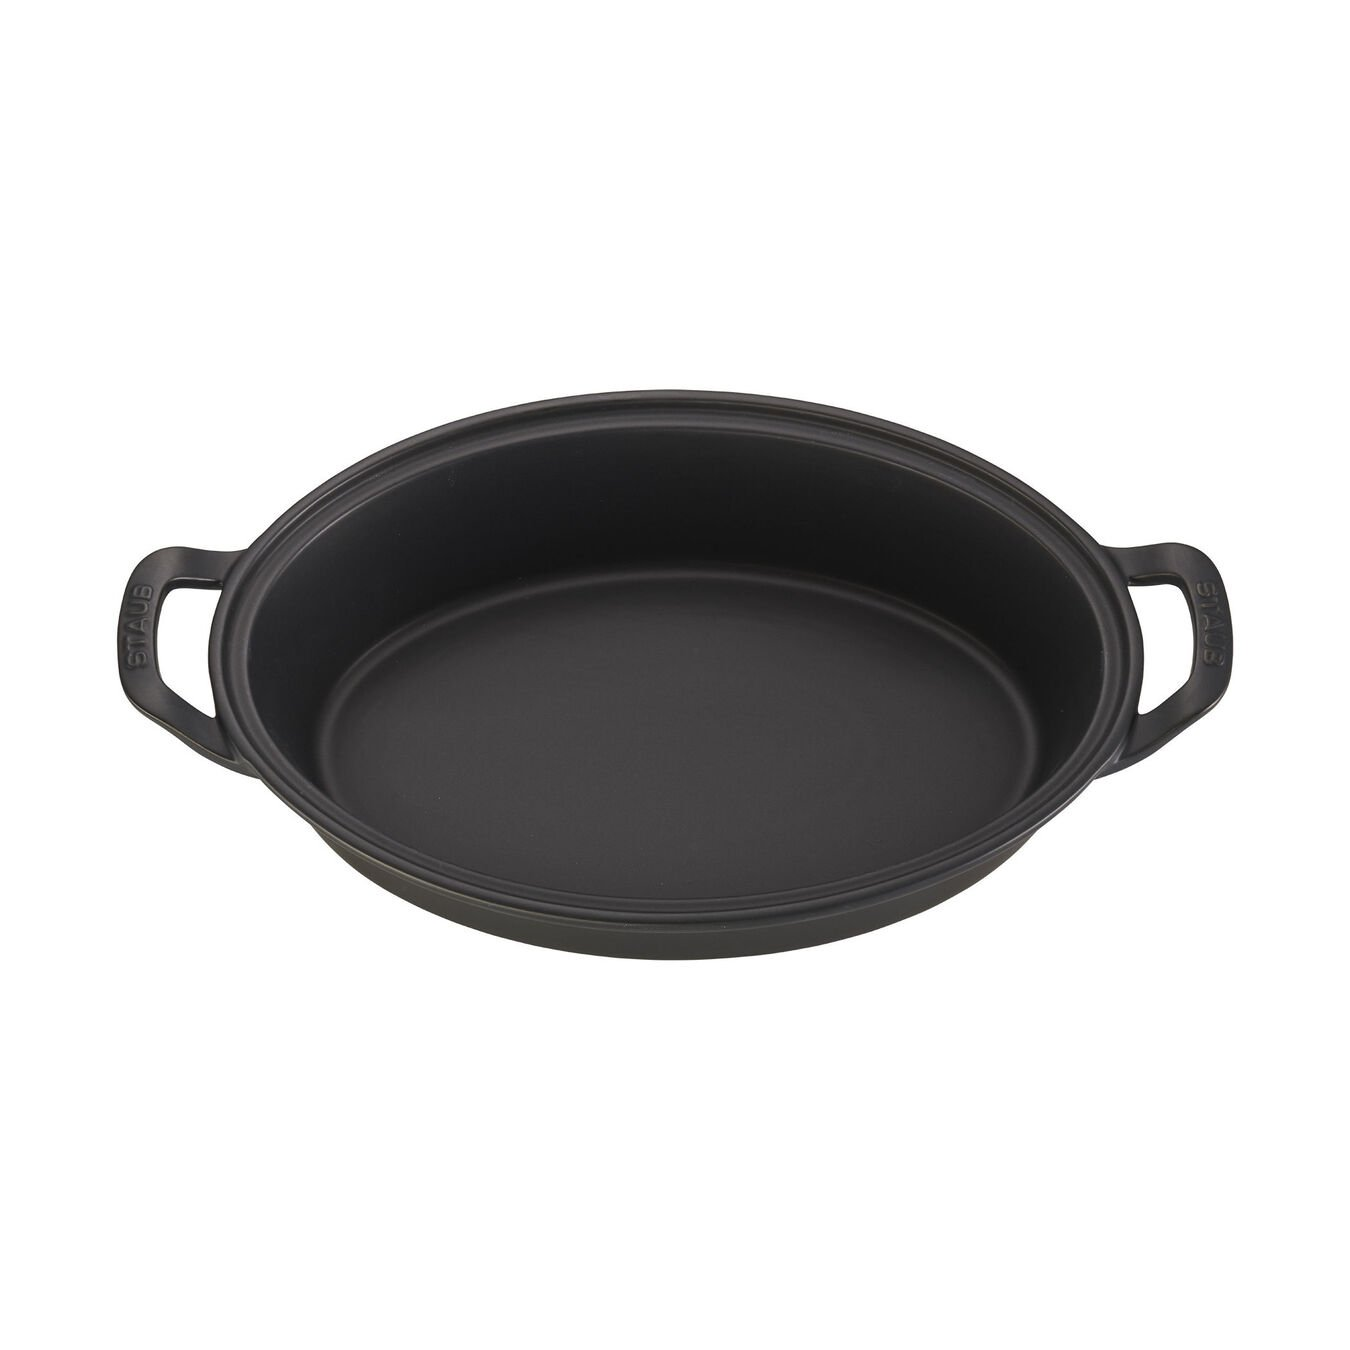 14-inch Oval Covered Baking Dish - Matte Black,,large 2